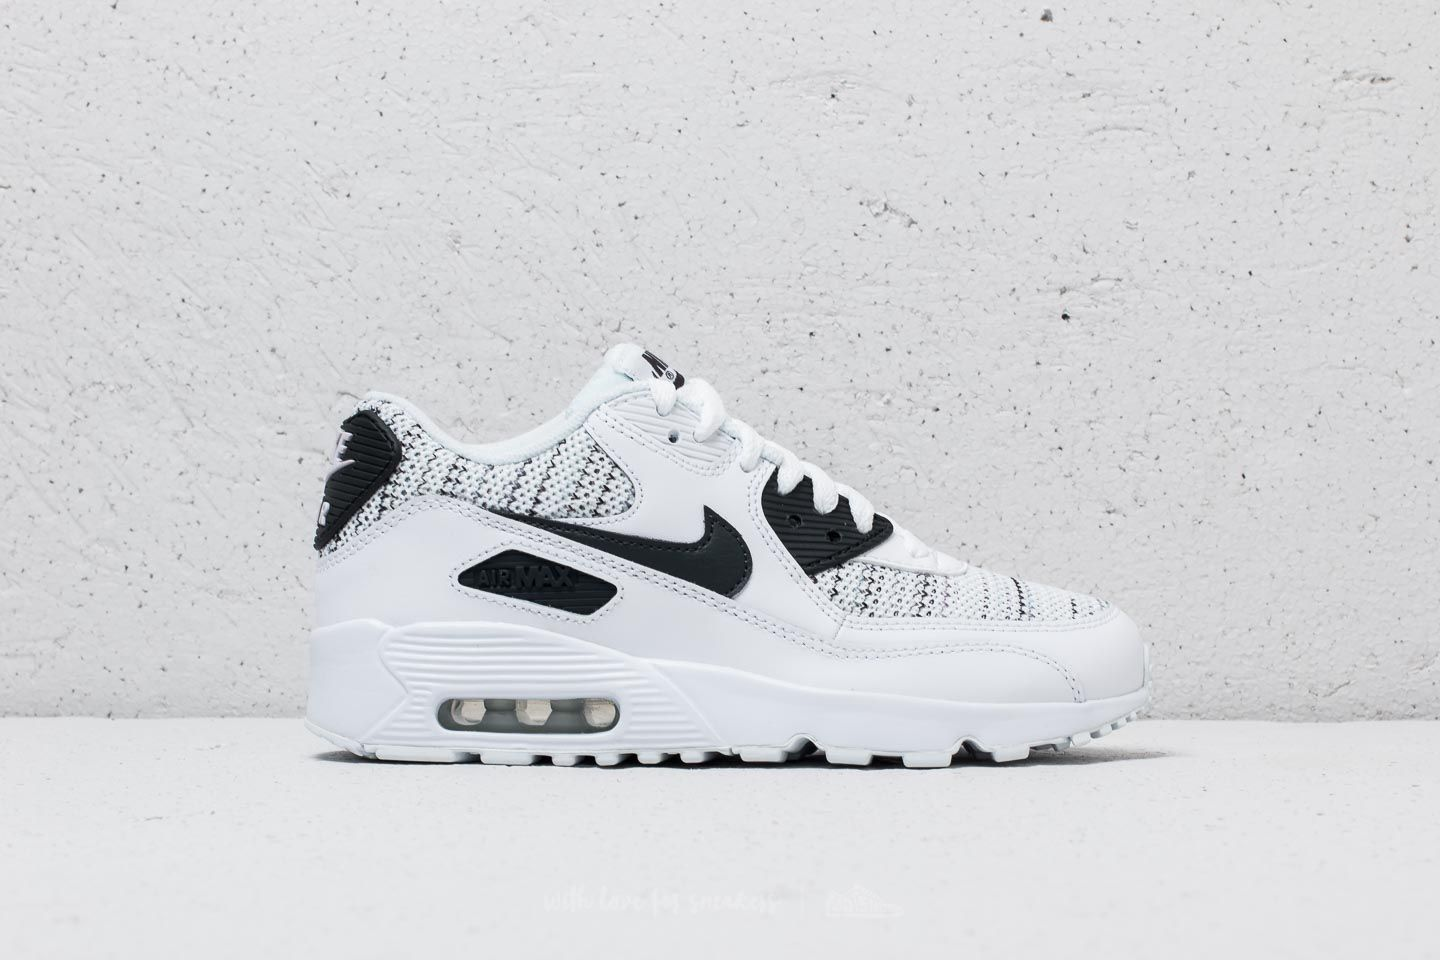 meilleur site web ce9c8 5179c Nike Air Max 90 Mesh SE (GS) White/ Anthracite-Cool Grey ...